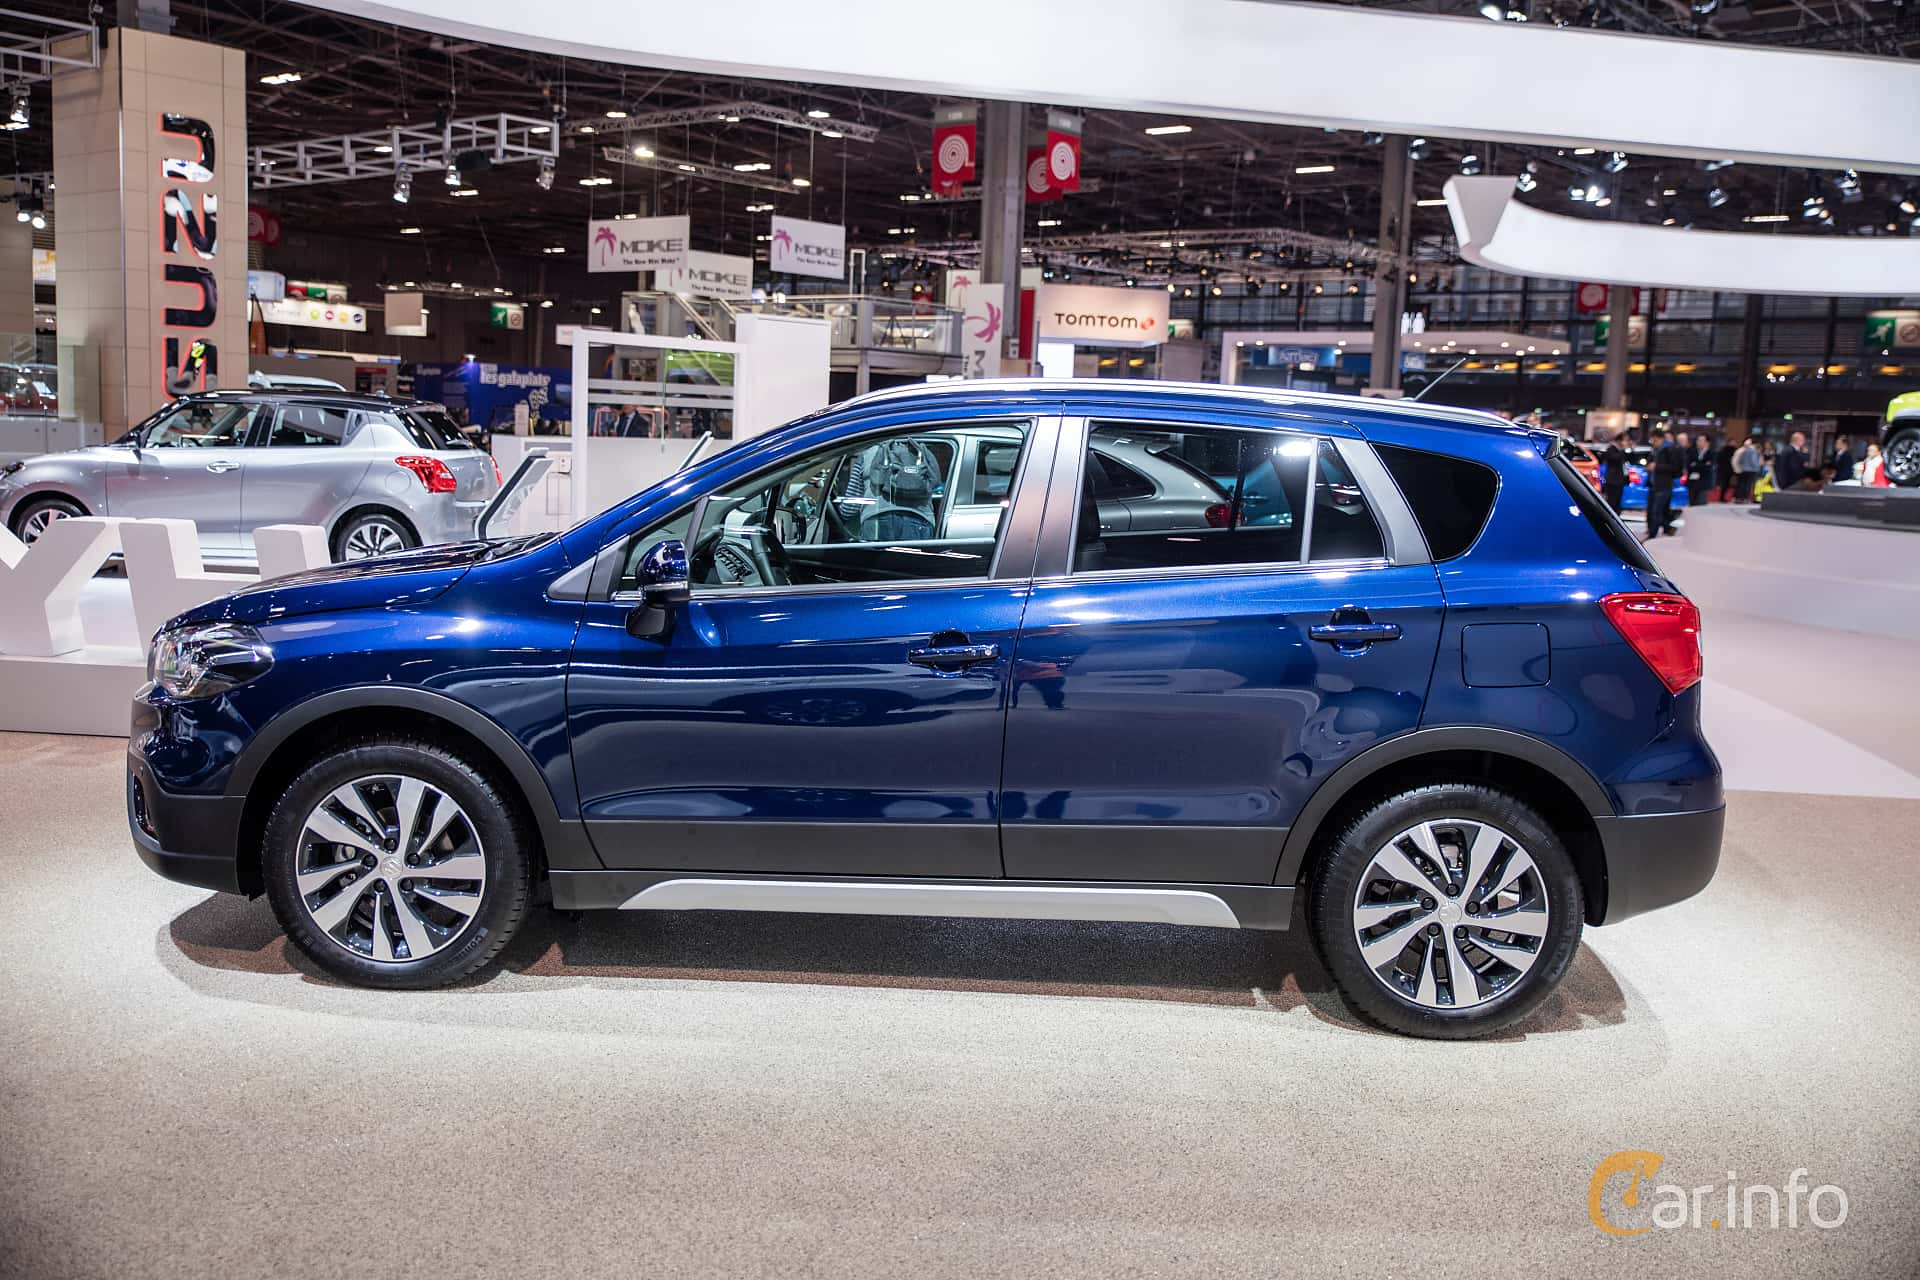 72 Gallery of 2019 Suzuki Sx4 Pictures with 2019 Suzuki Sx4